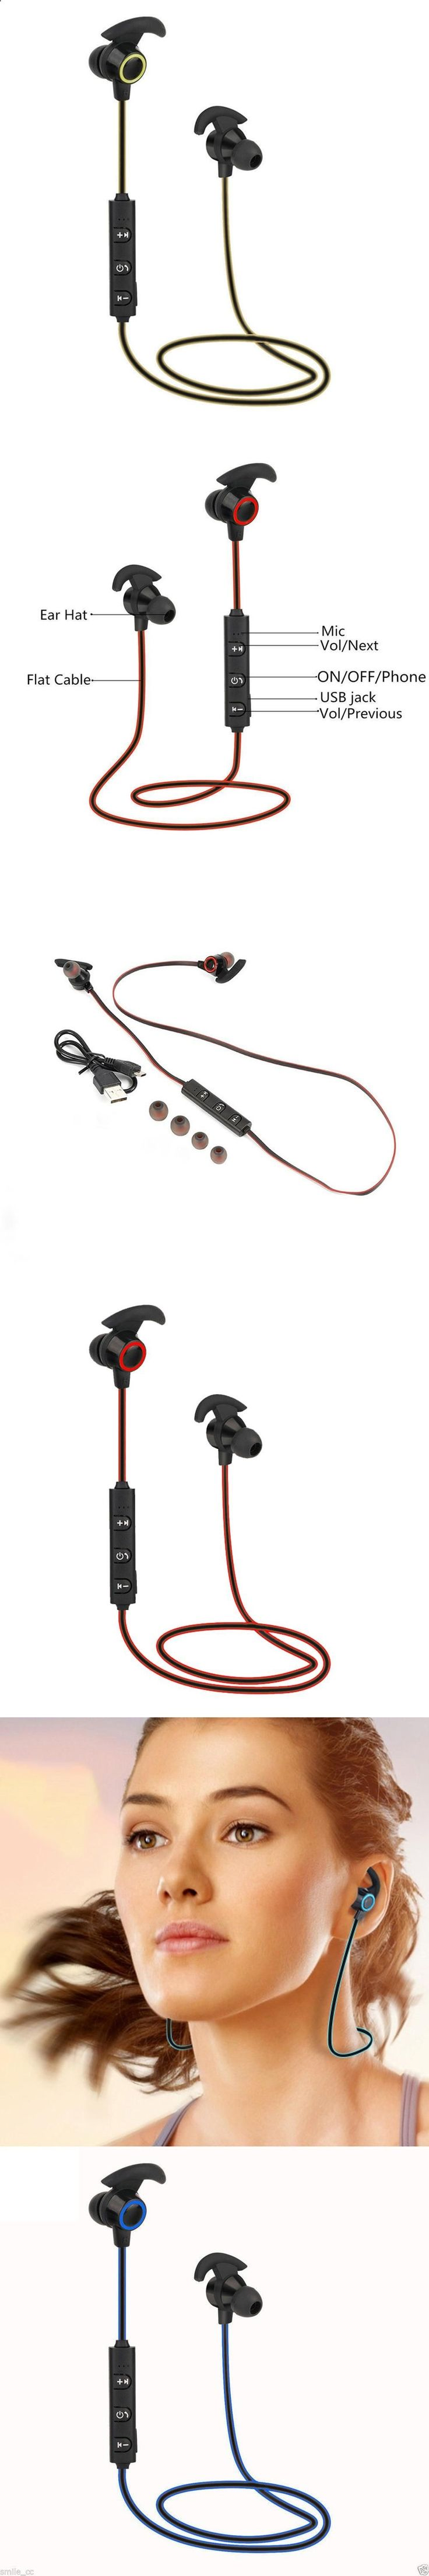 Sports Headphones - 2017 Stereo Ear Hook Bluetooth Earphone Wireless Sport Headphone Headsets With Micphone Handsfree for iPhone Samsung HTC Phone - If you usually go out to run, walk or any other sport in which you usually carry music to accompany or motivate you, we have selected 13 models of sports headphones that we consider among the best in the market for different aspects, from comfort to use to design, sound quality or value for money, so that you find variety and can adjust th...